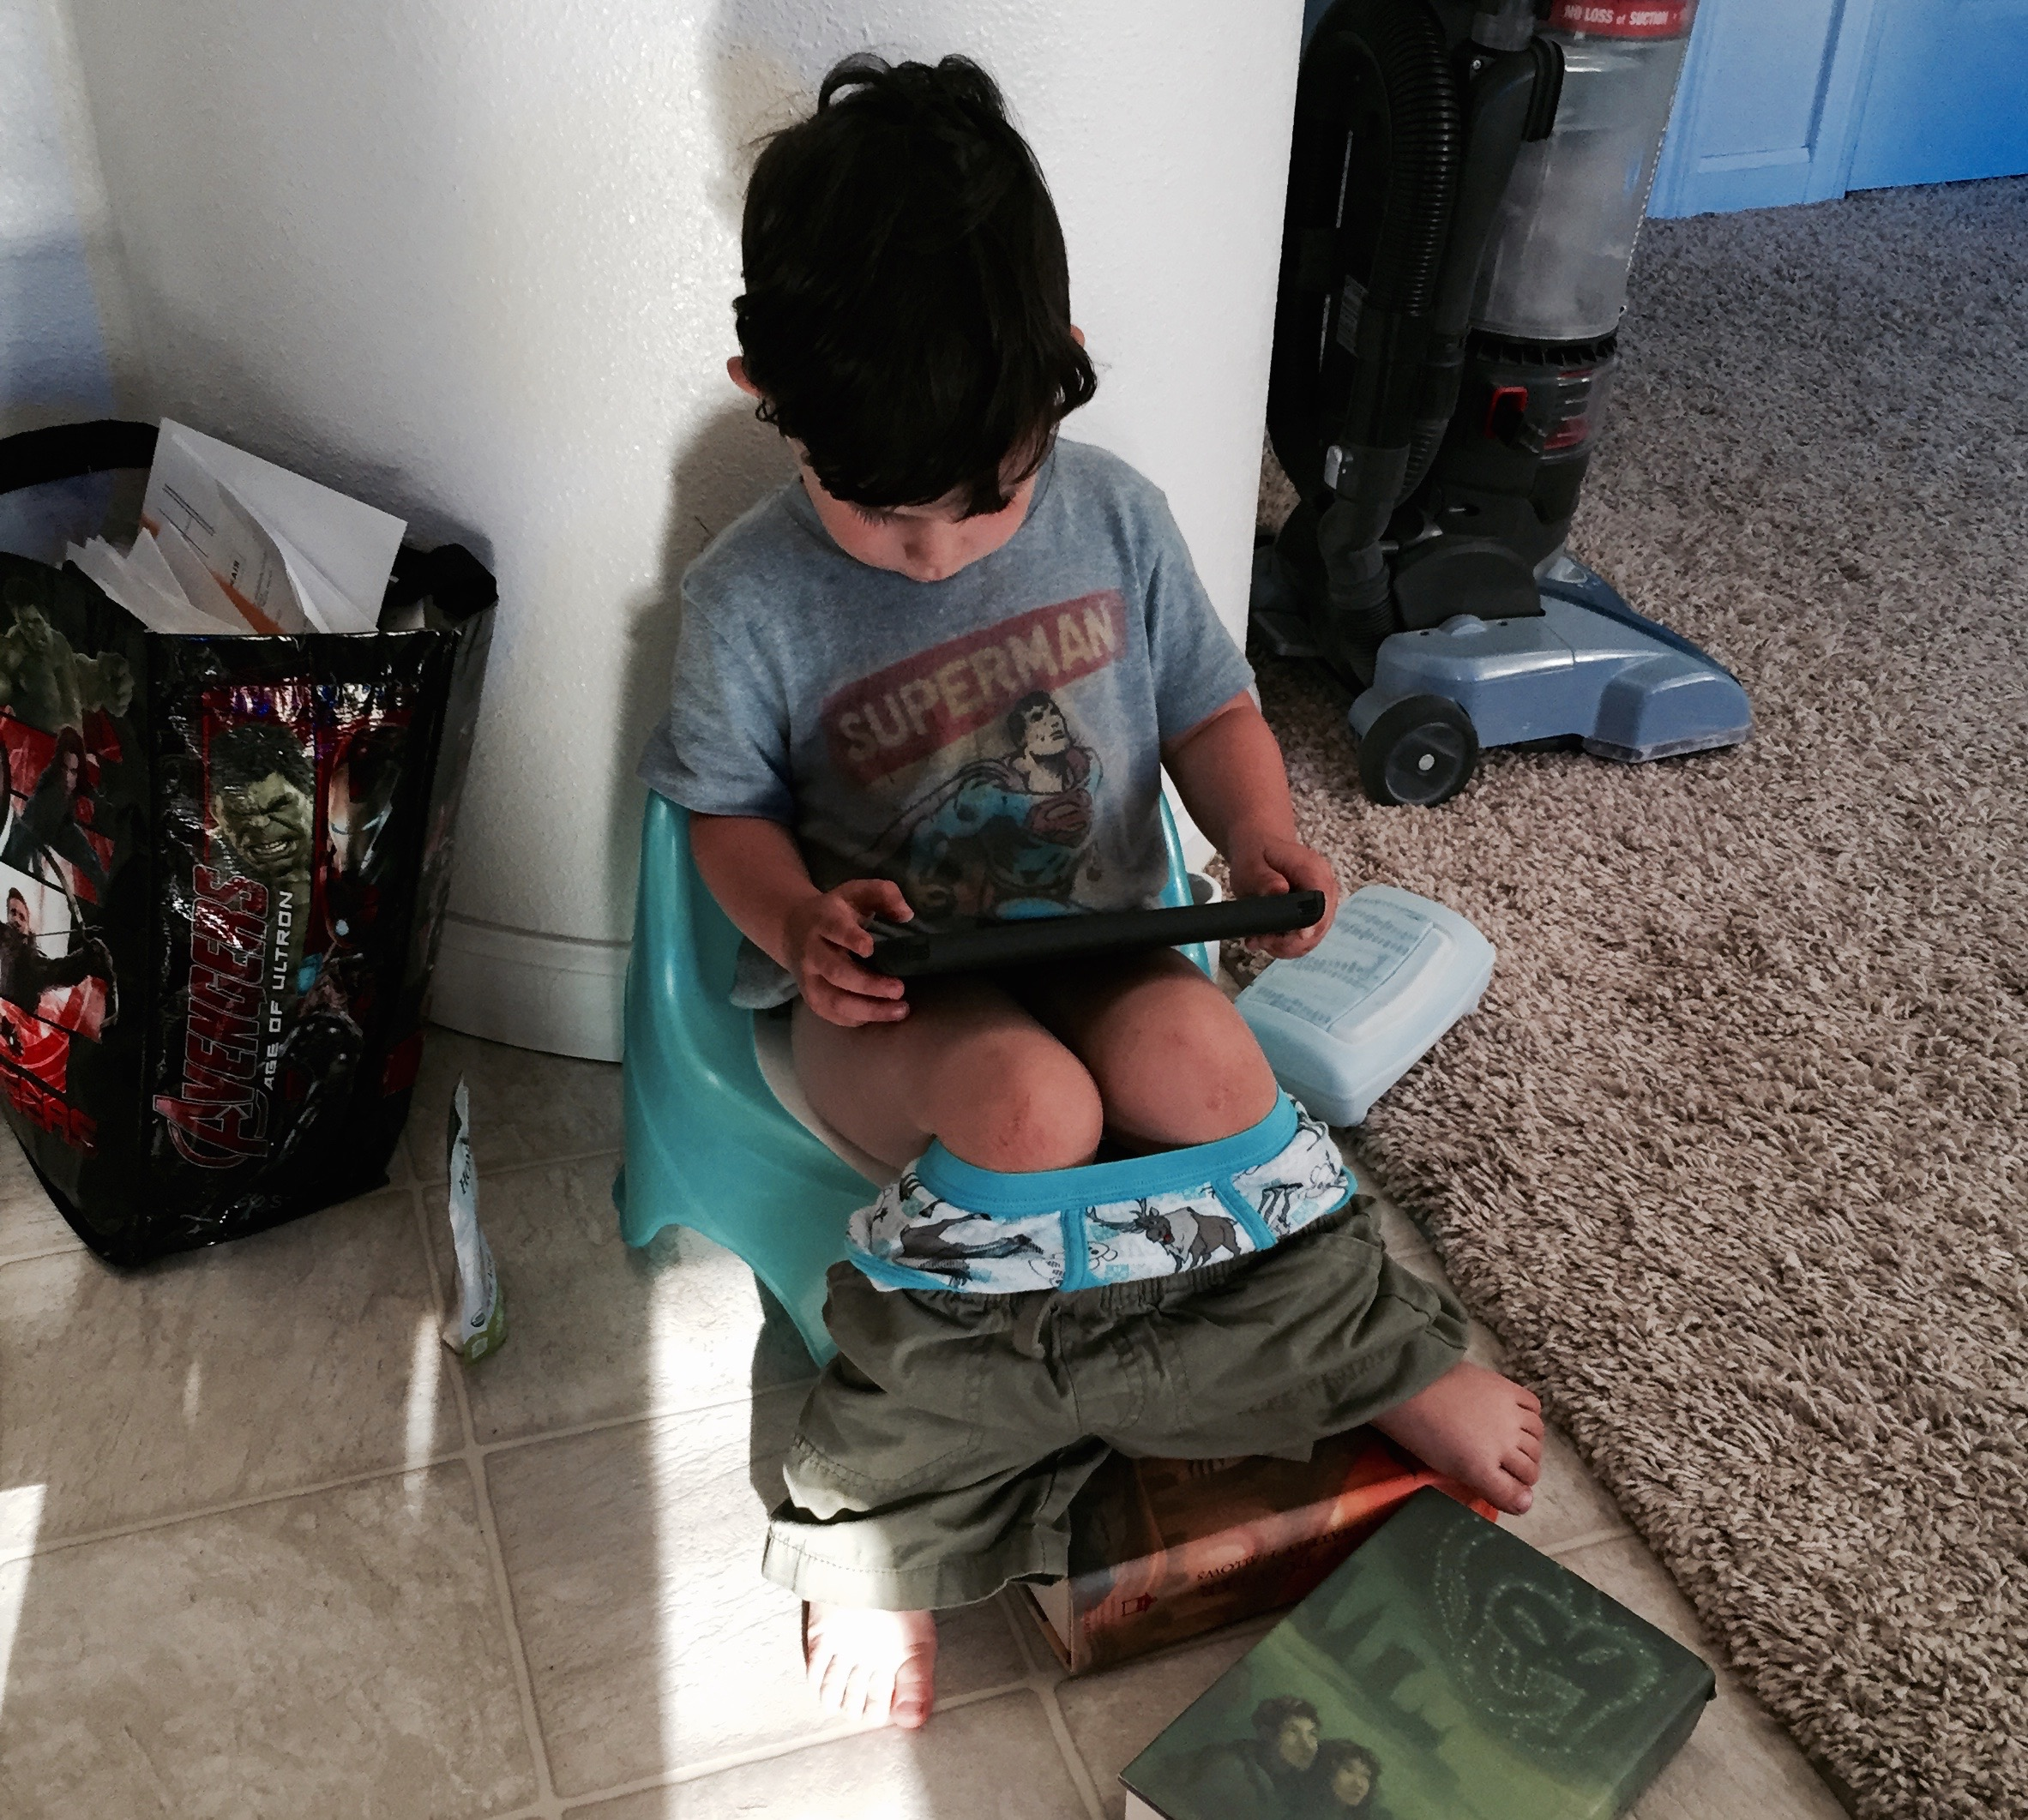 Big boy training - I'm referring to the iPad on the potty more than just the potty training.